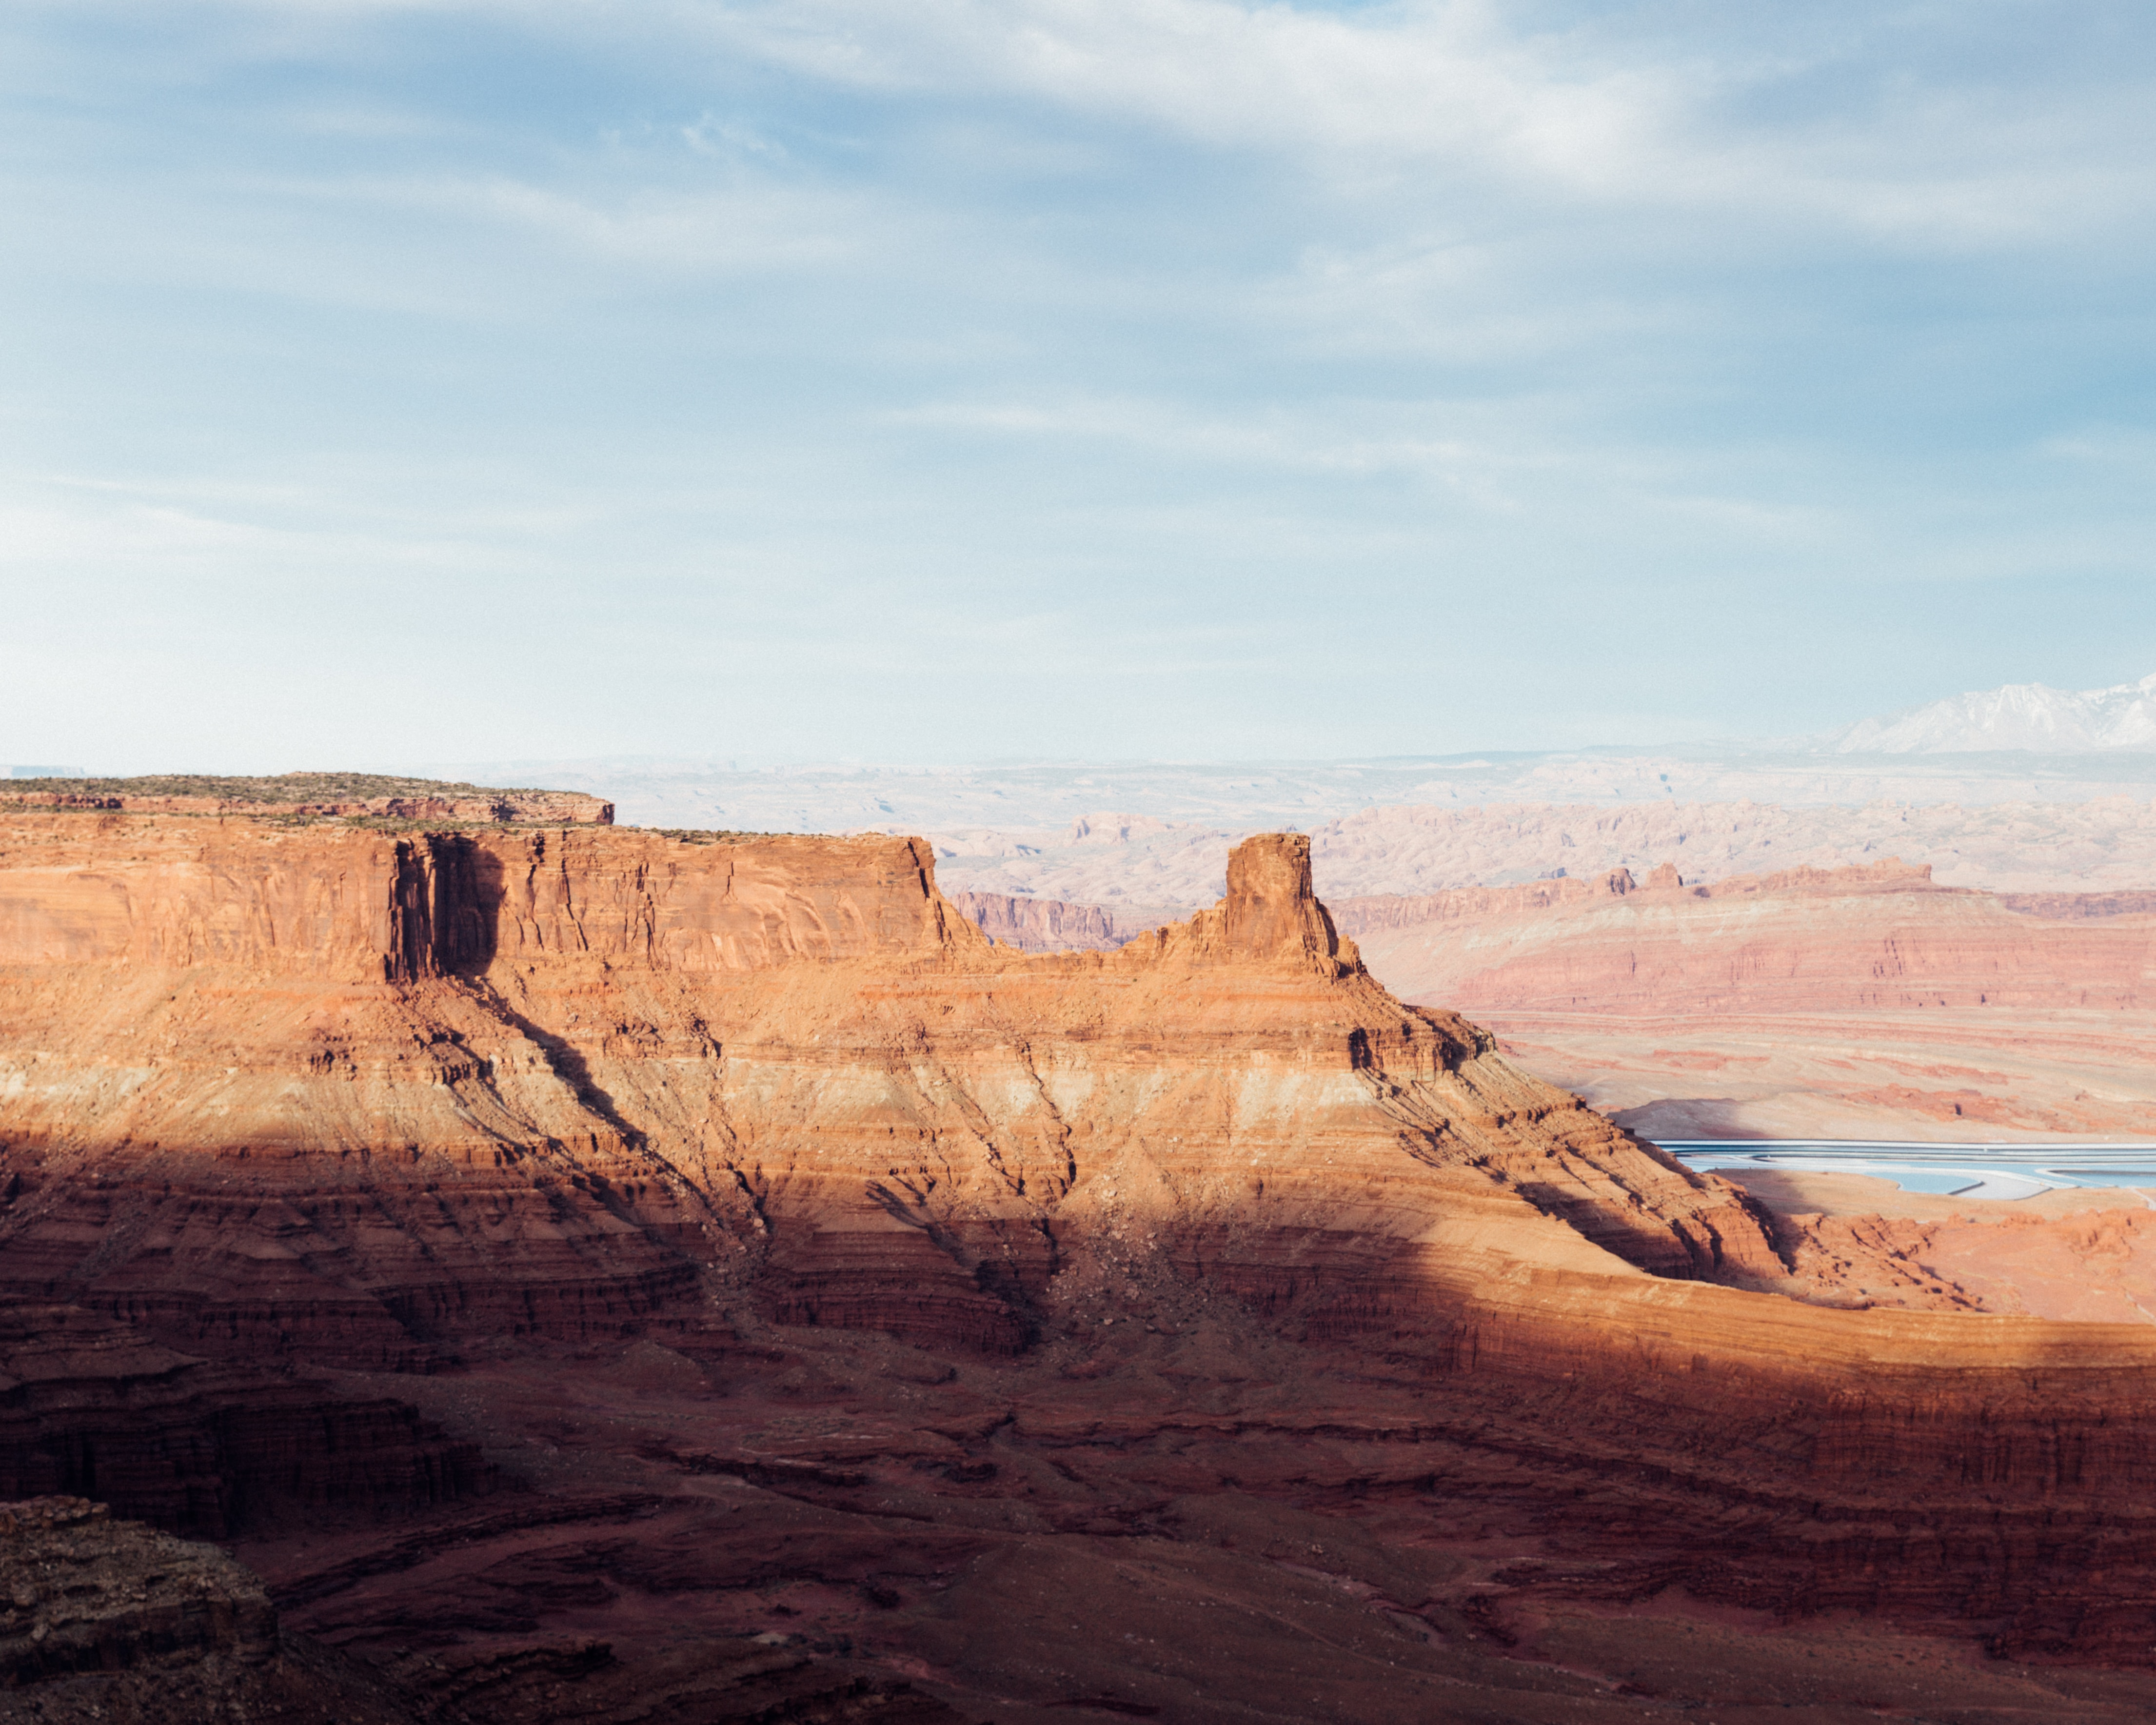 Morning cliff view at the Dead Horse Point State Park